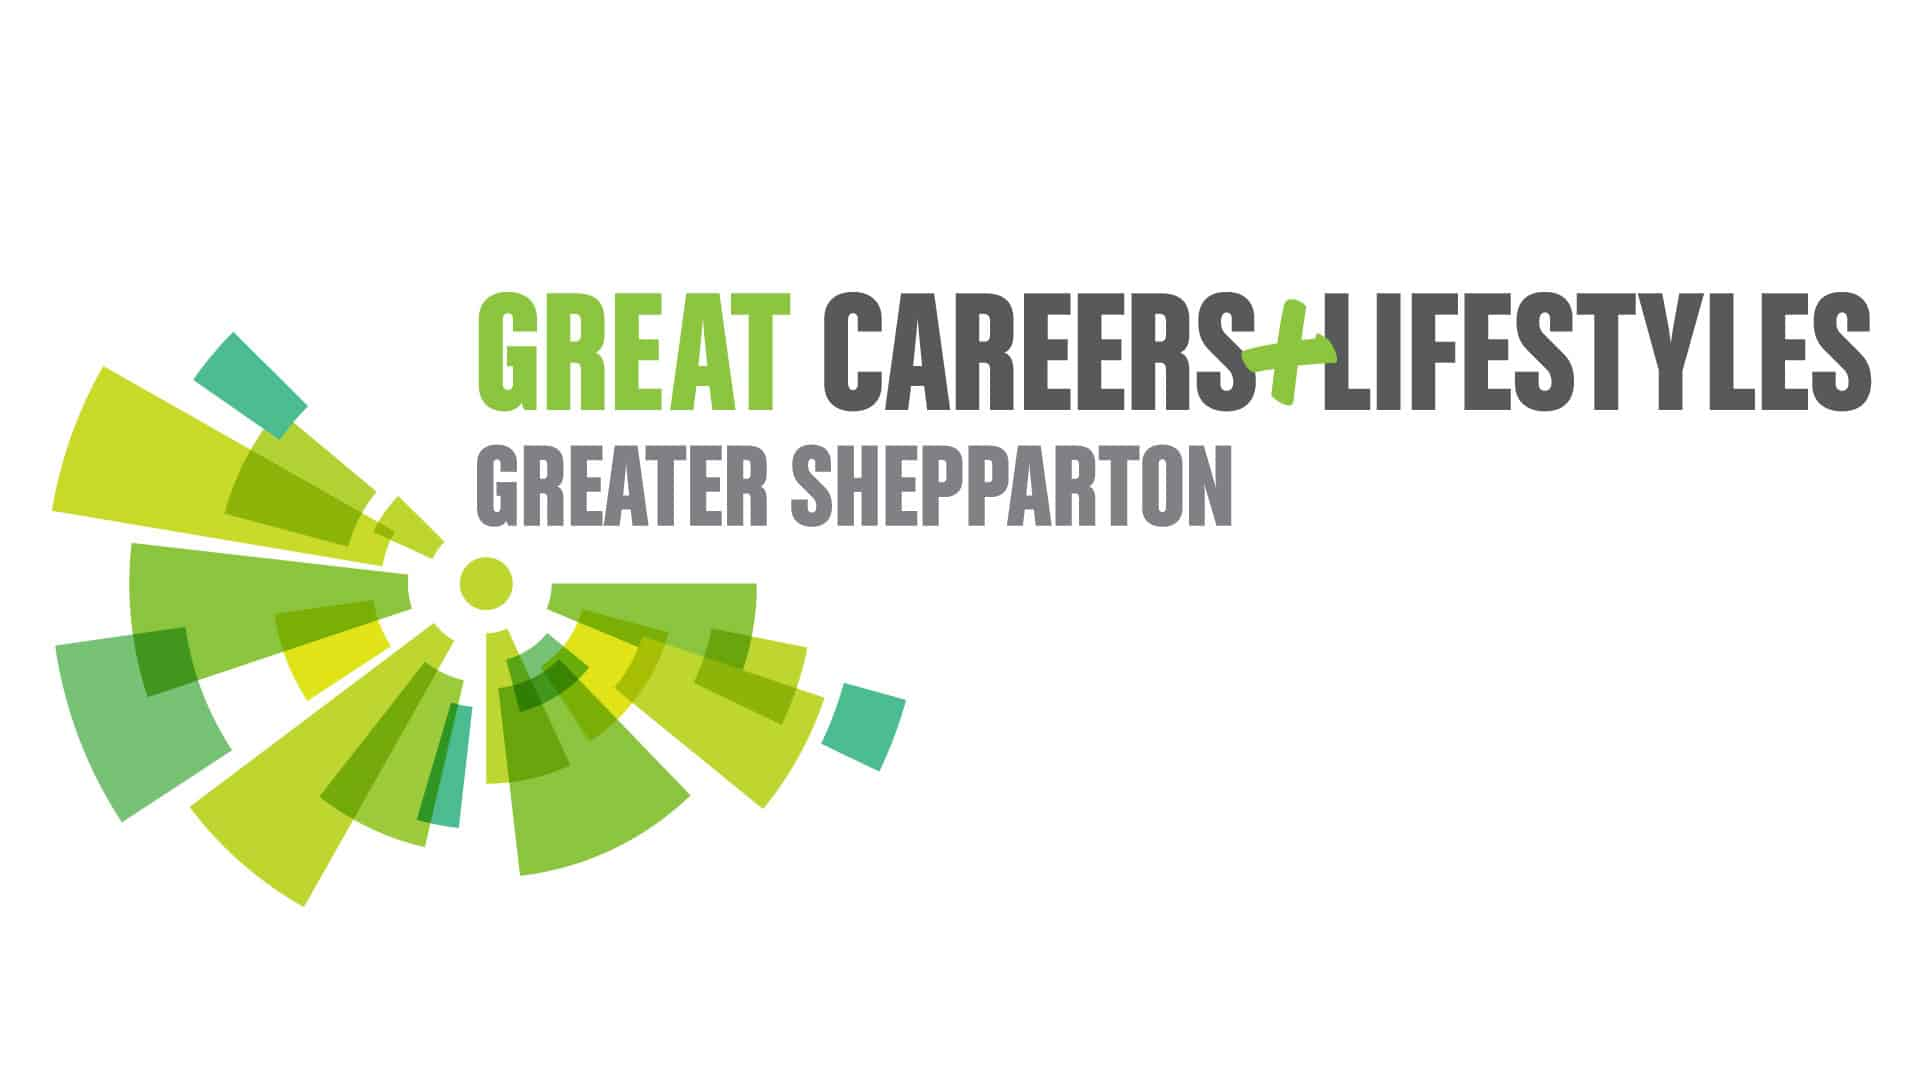 http://www.careersdayout.com.au/wp-content/uploads/2021/05/Great-Careers-and-Lifestyle-logo.jpg